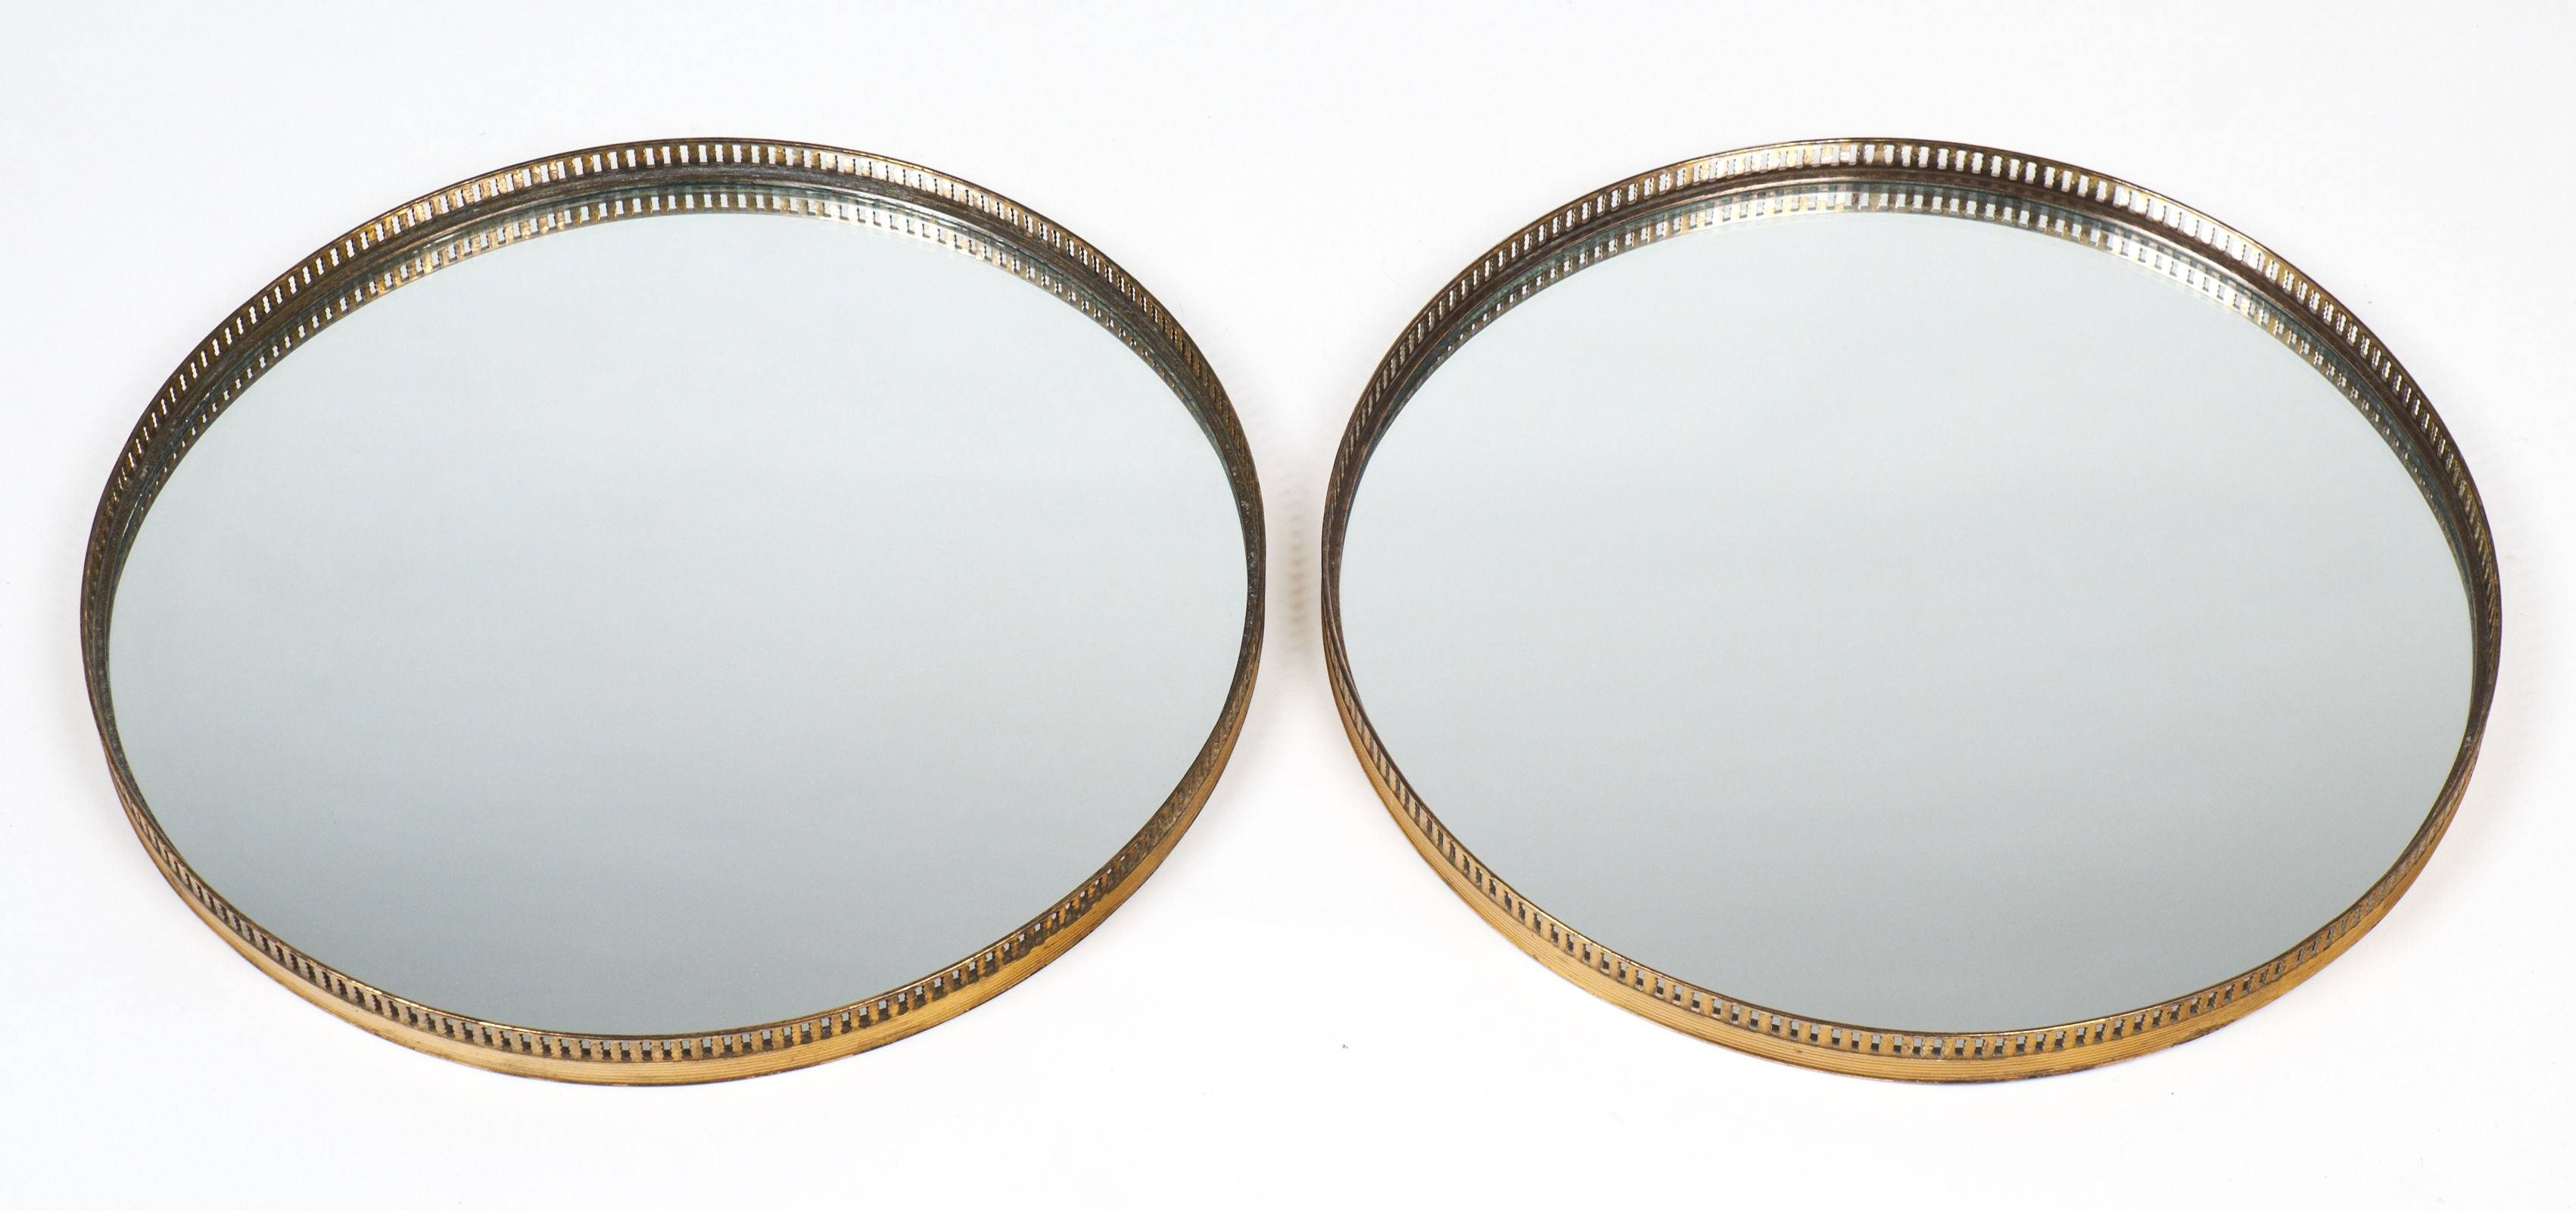 Antique Brass Gallery Round Wall Mirrors - Jean Marc Fray with Vintage Wall Mirrors (Image 4 of 25)